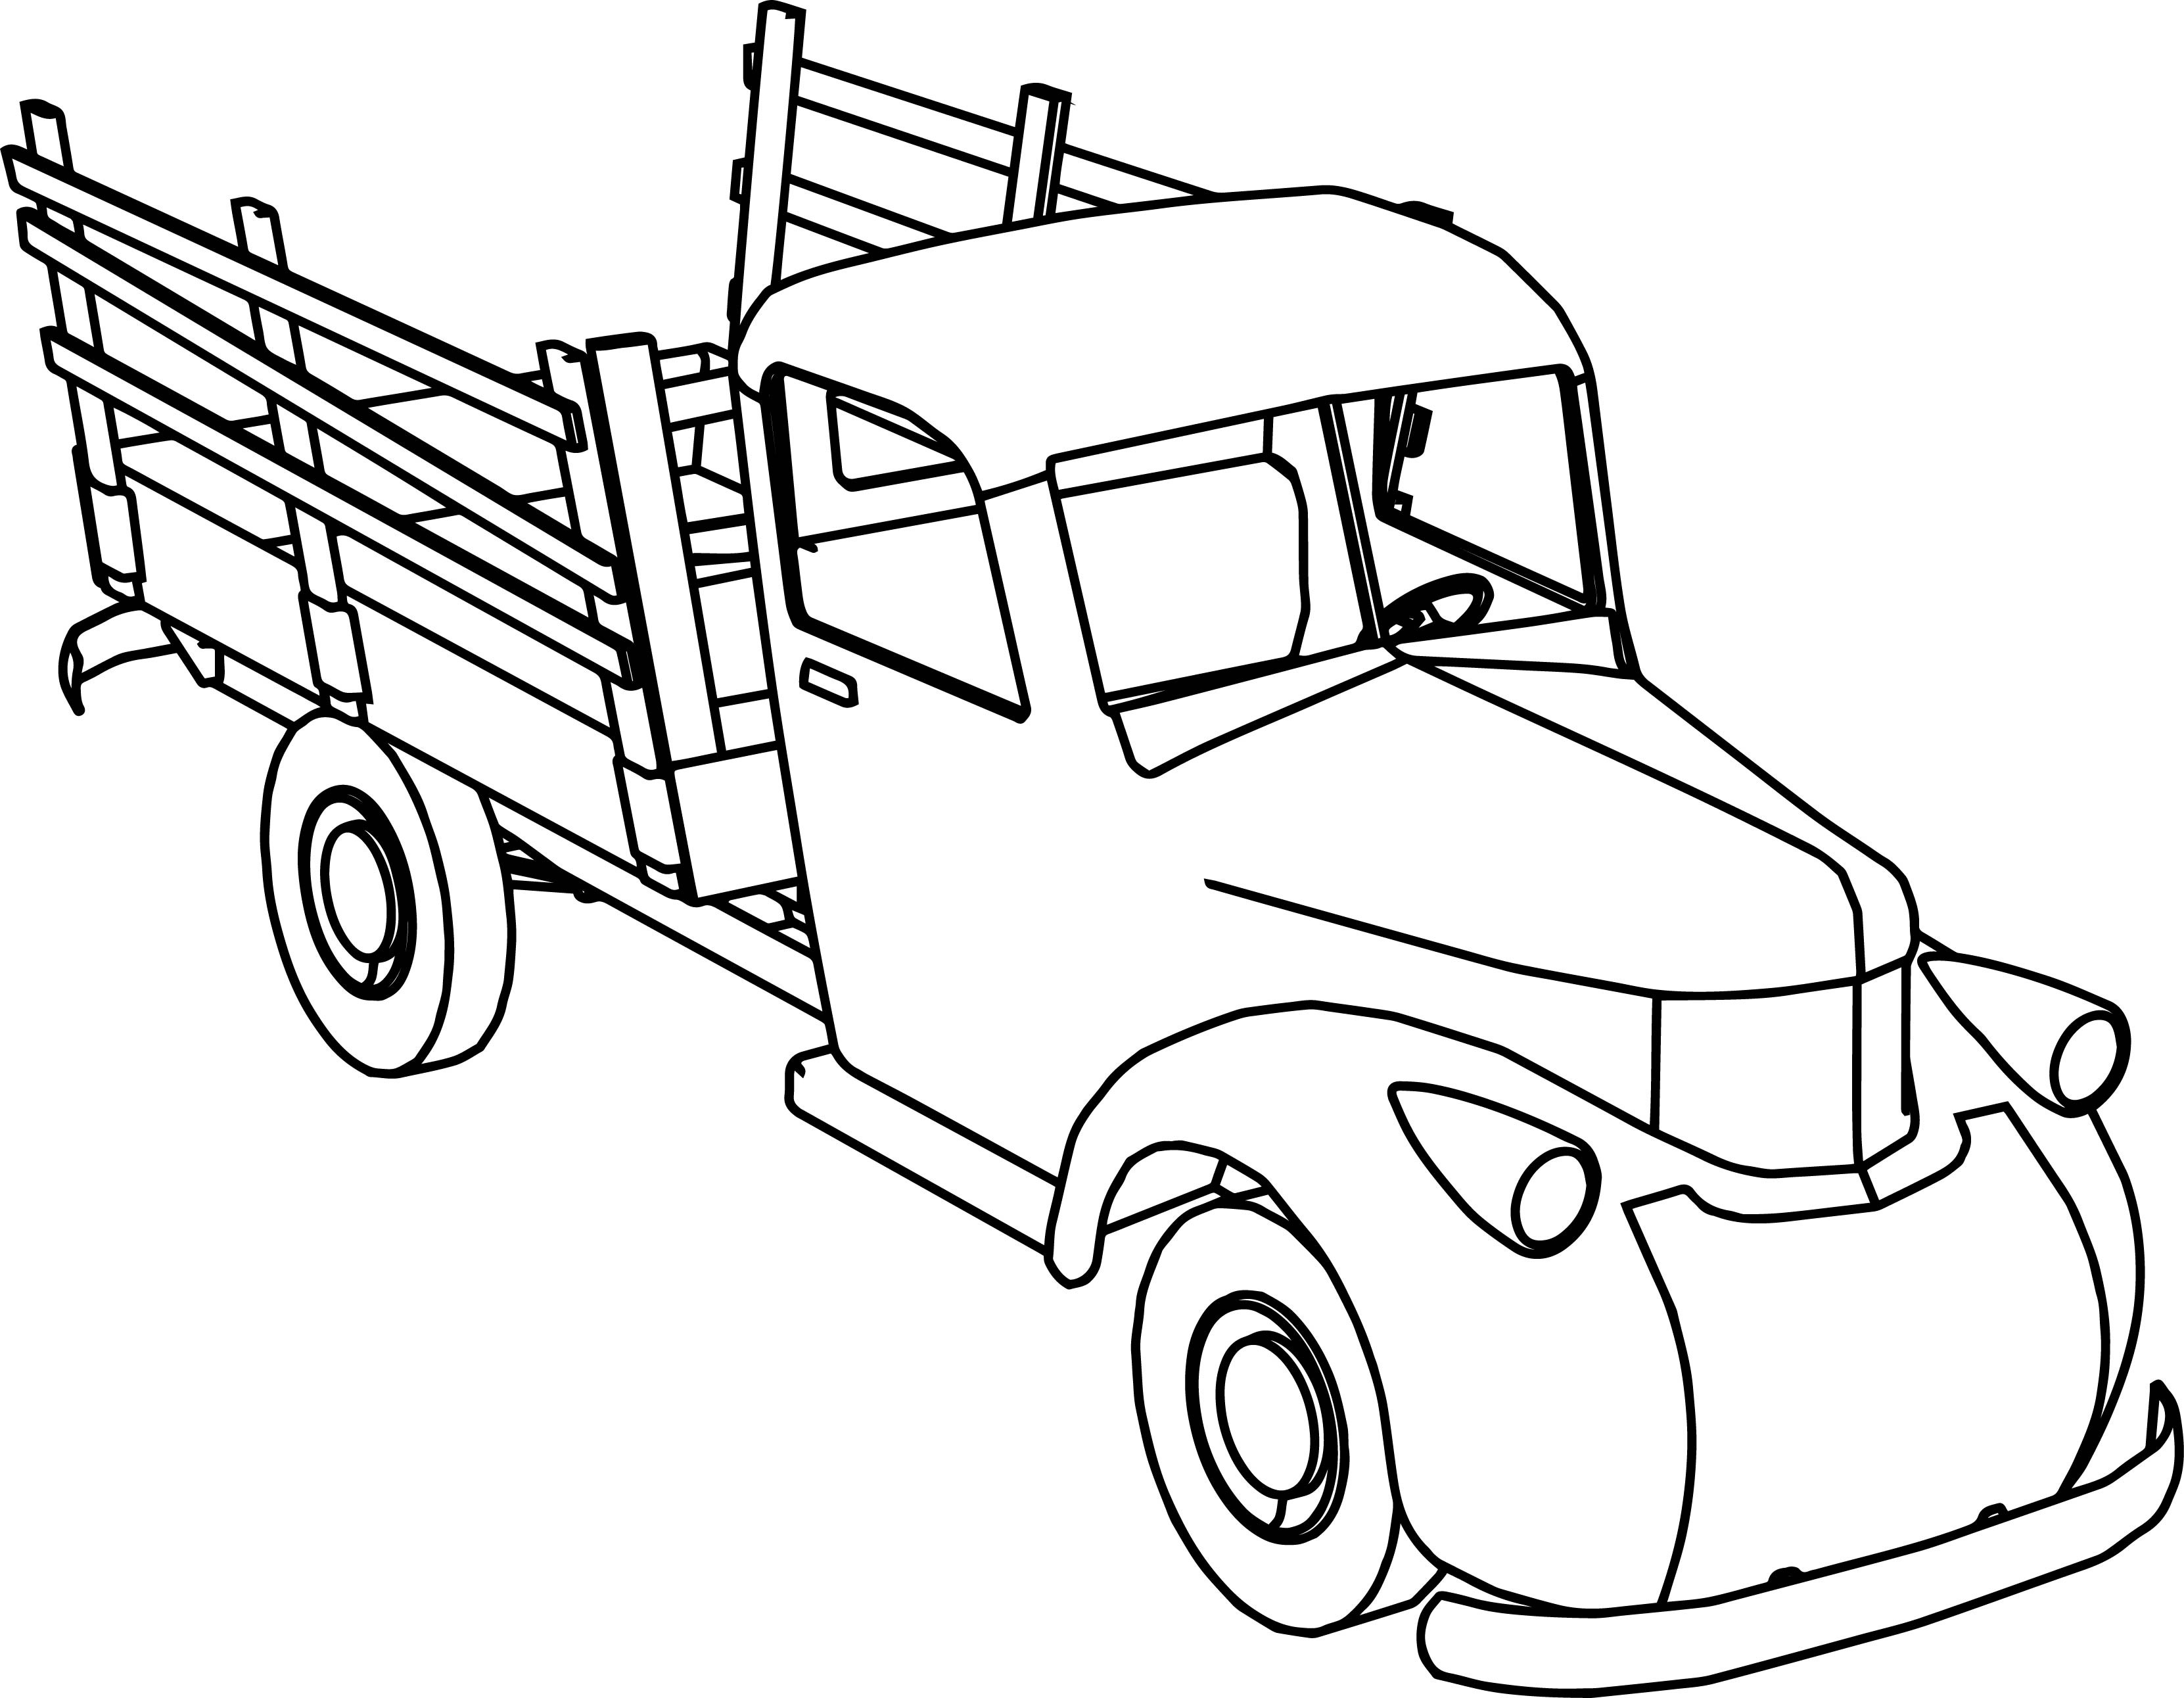 truck colouring in tonka truck coloring pages at getcoloringscom free colouring in truck